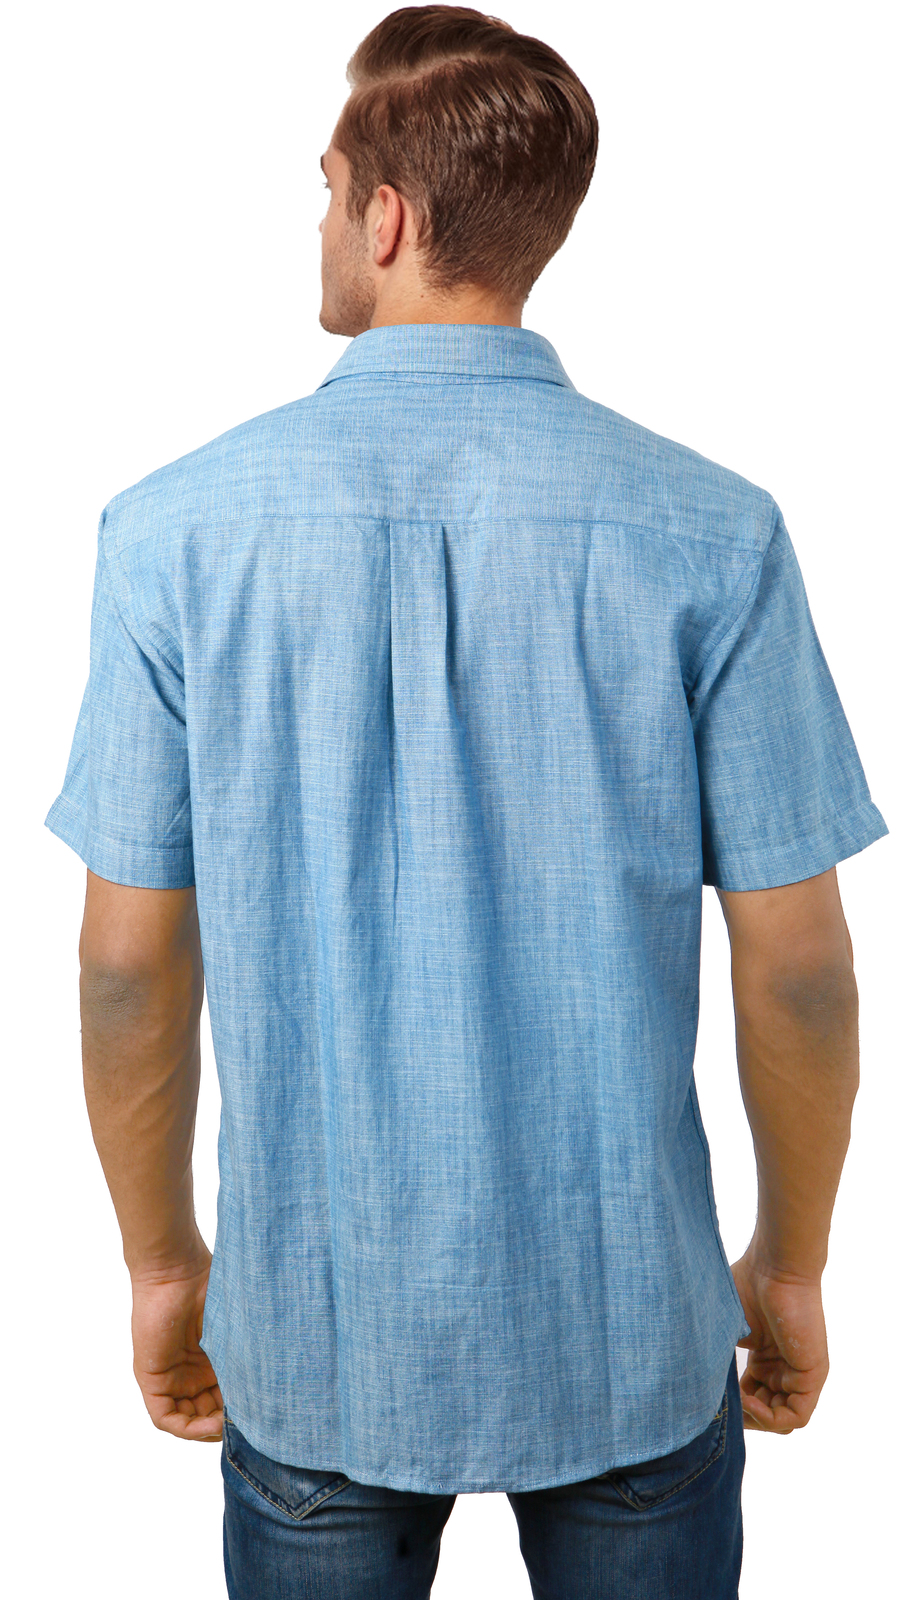 Find Short Sleeve Men's Denim Shirts, Long Sleeve Men's Denim Shirts and more at Macy's. Macy's Presents: The Edit - A curated mix of fashion and inspiration Check It Out Free Shipping with $75 purchase + Free Store Pickup.